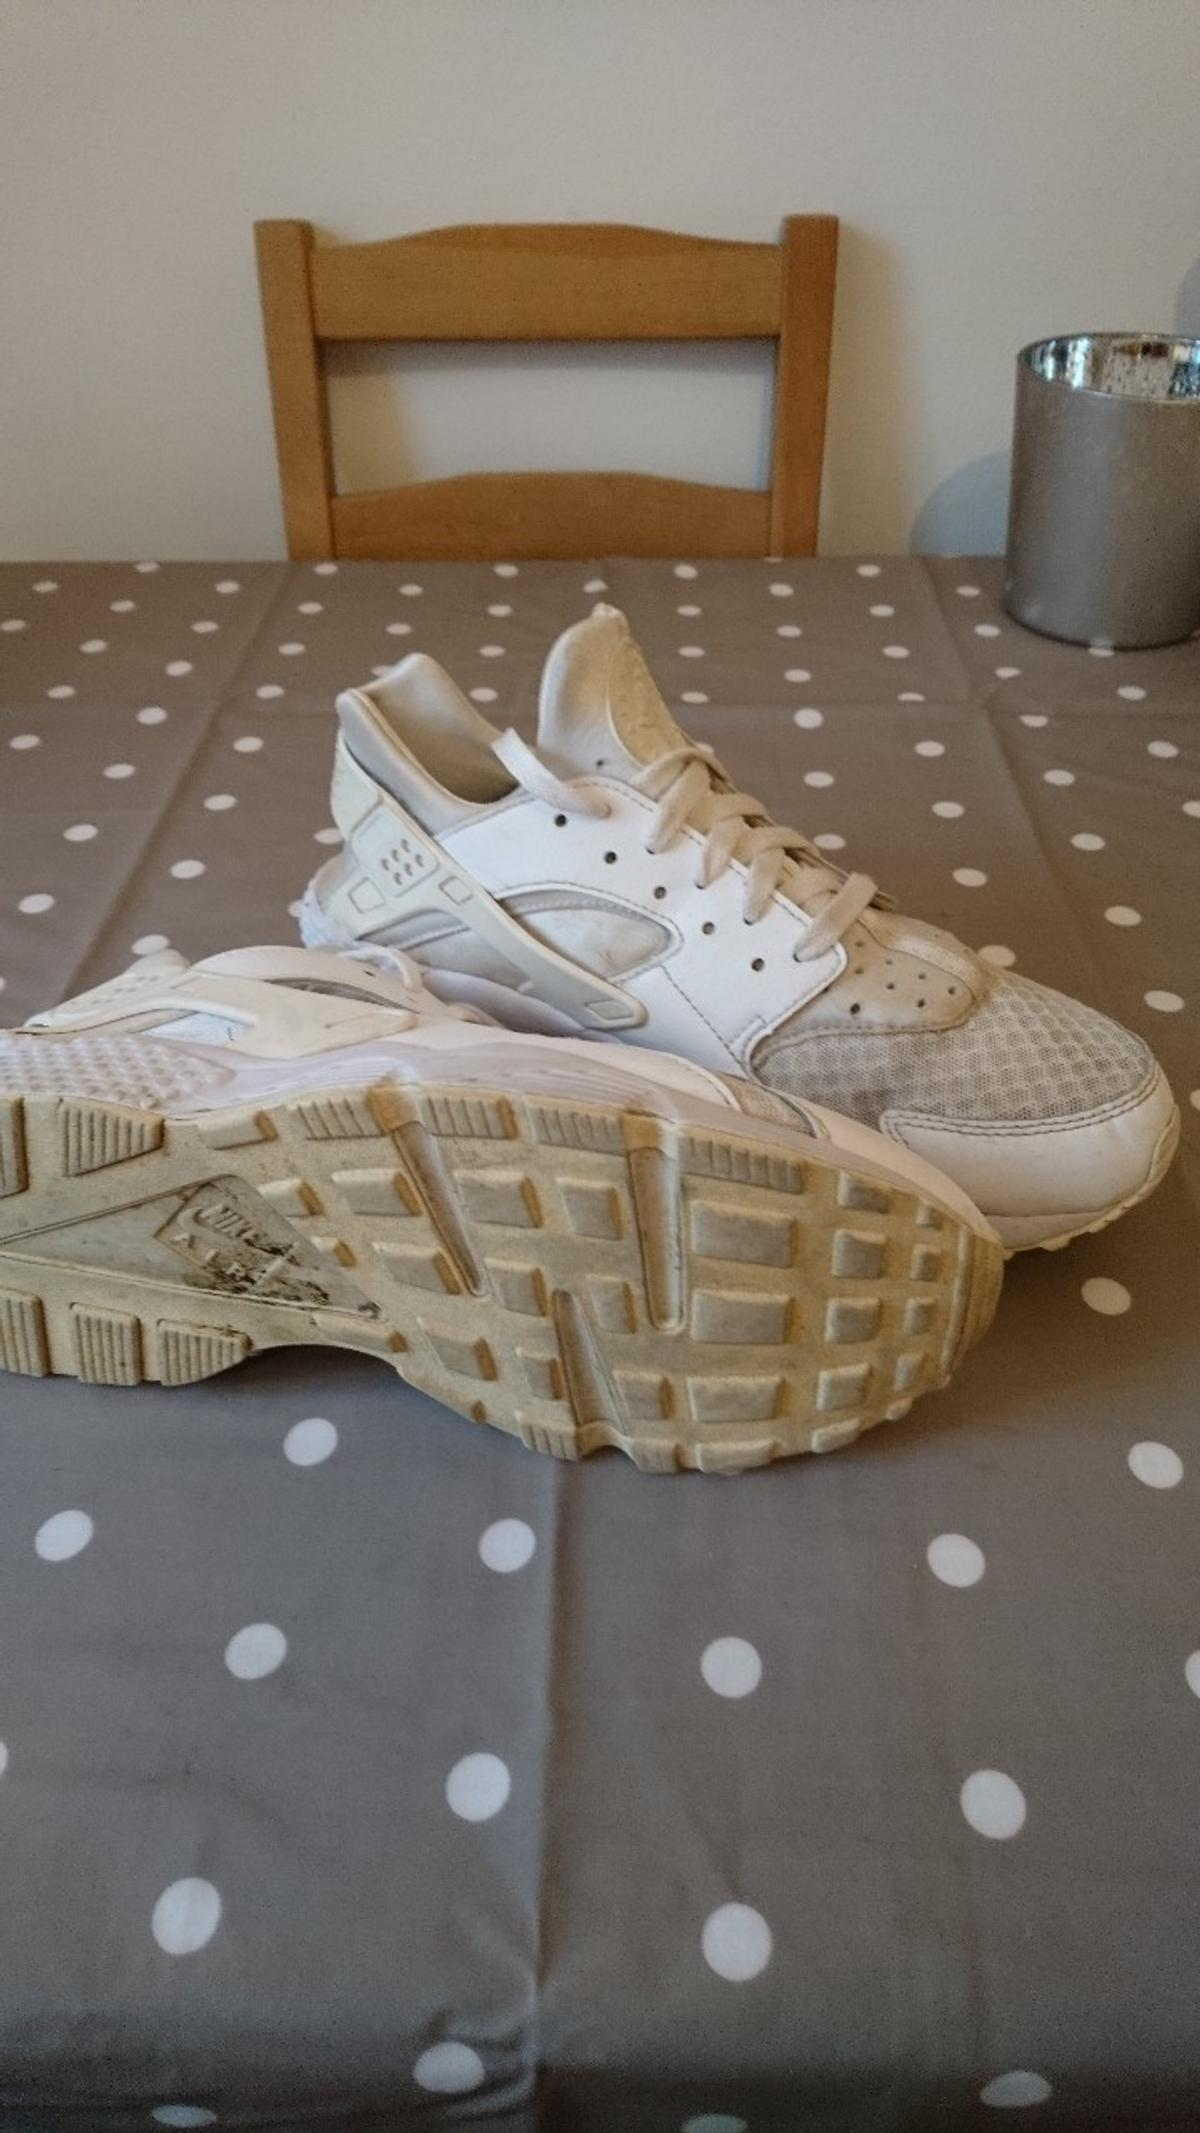 c5691d185942 Nike Huaraches white size 9.5 in CM13 Brentwood for £25.00 for sale ...